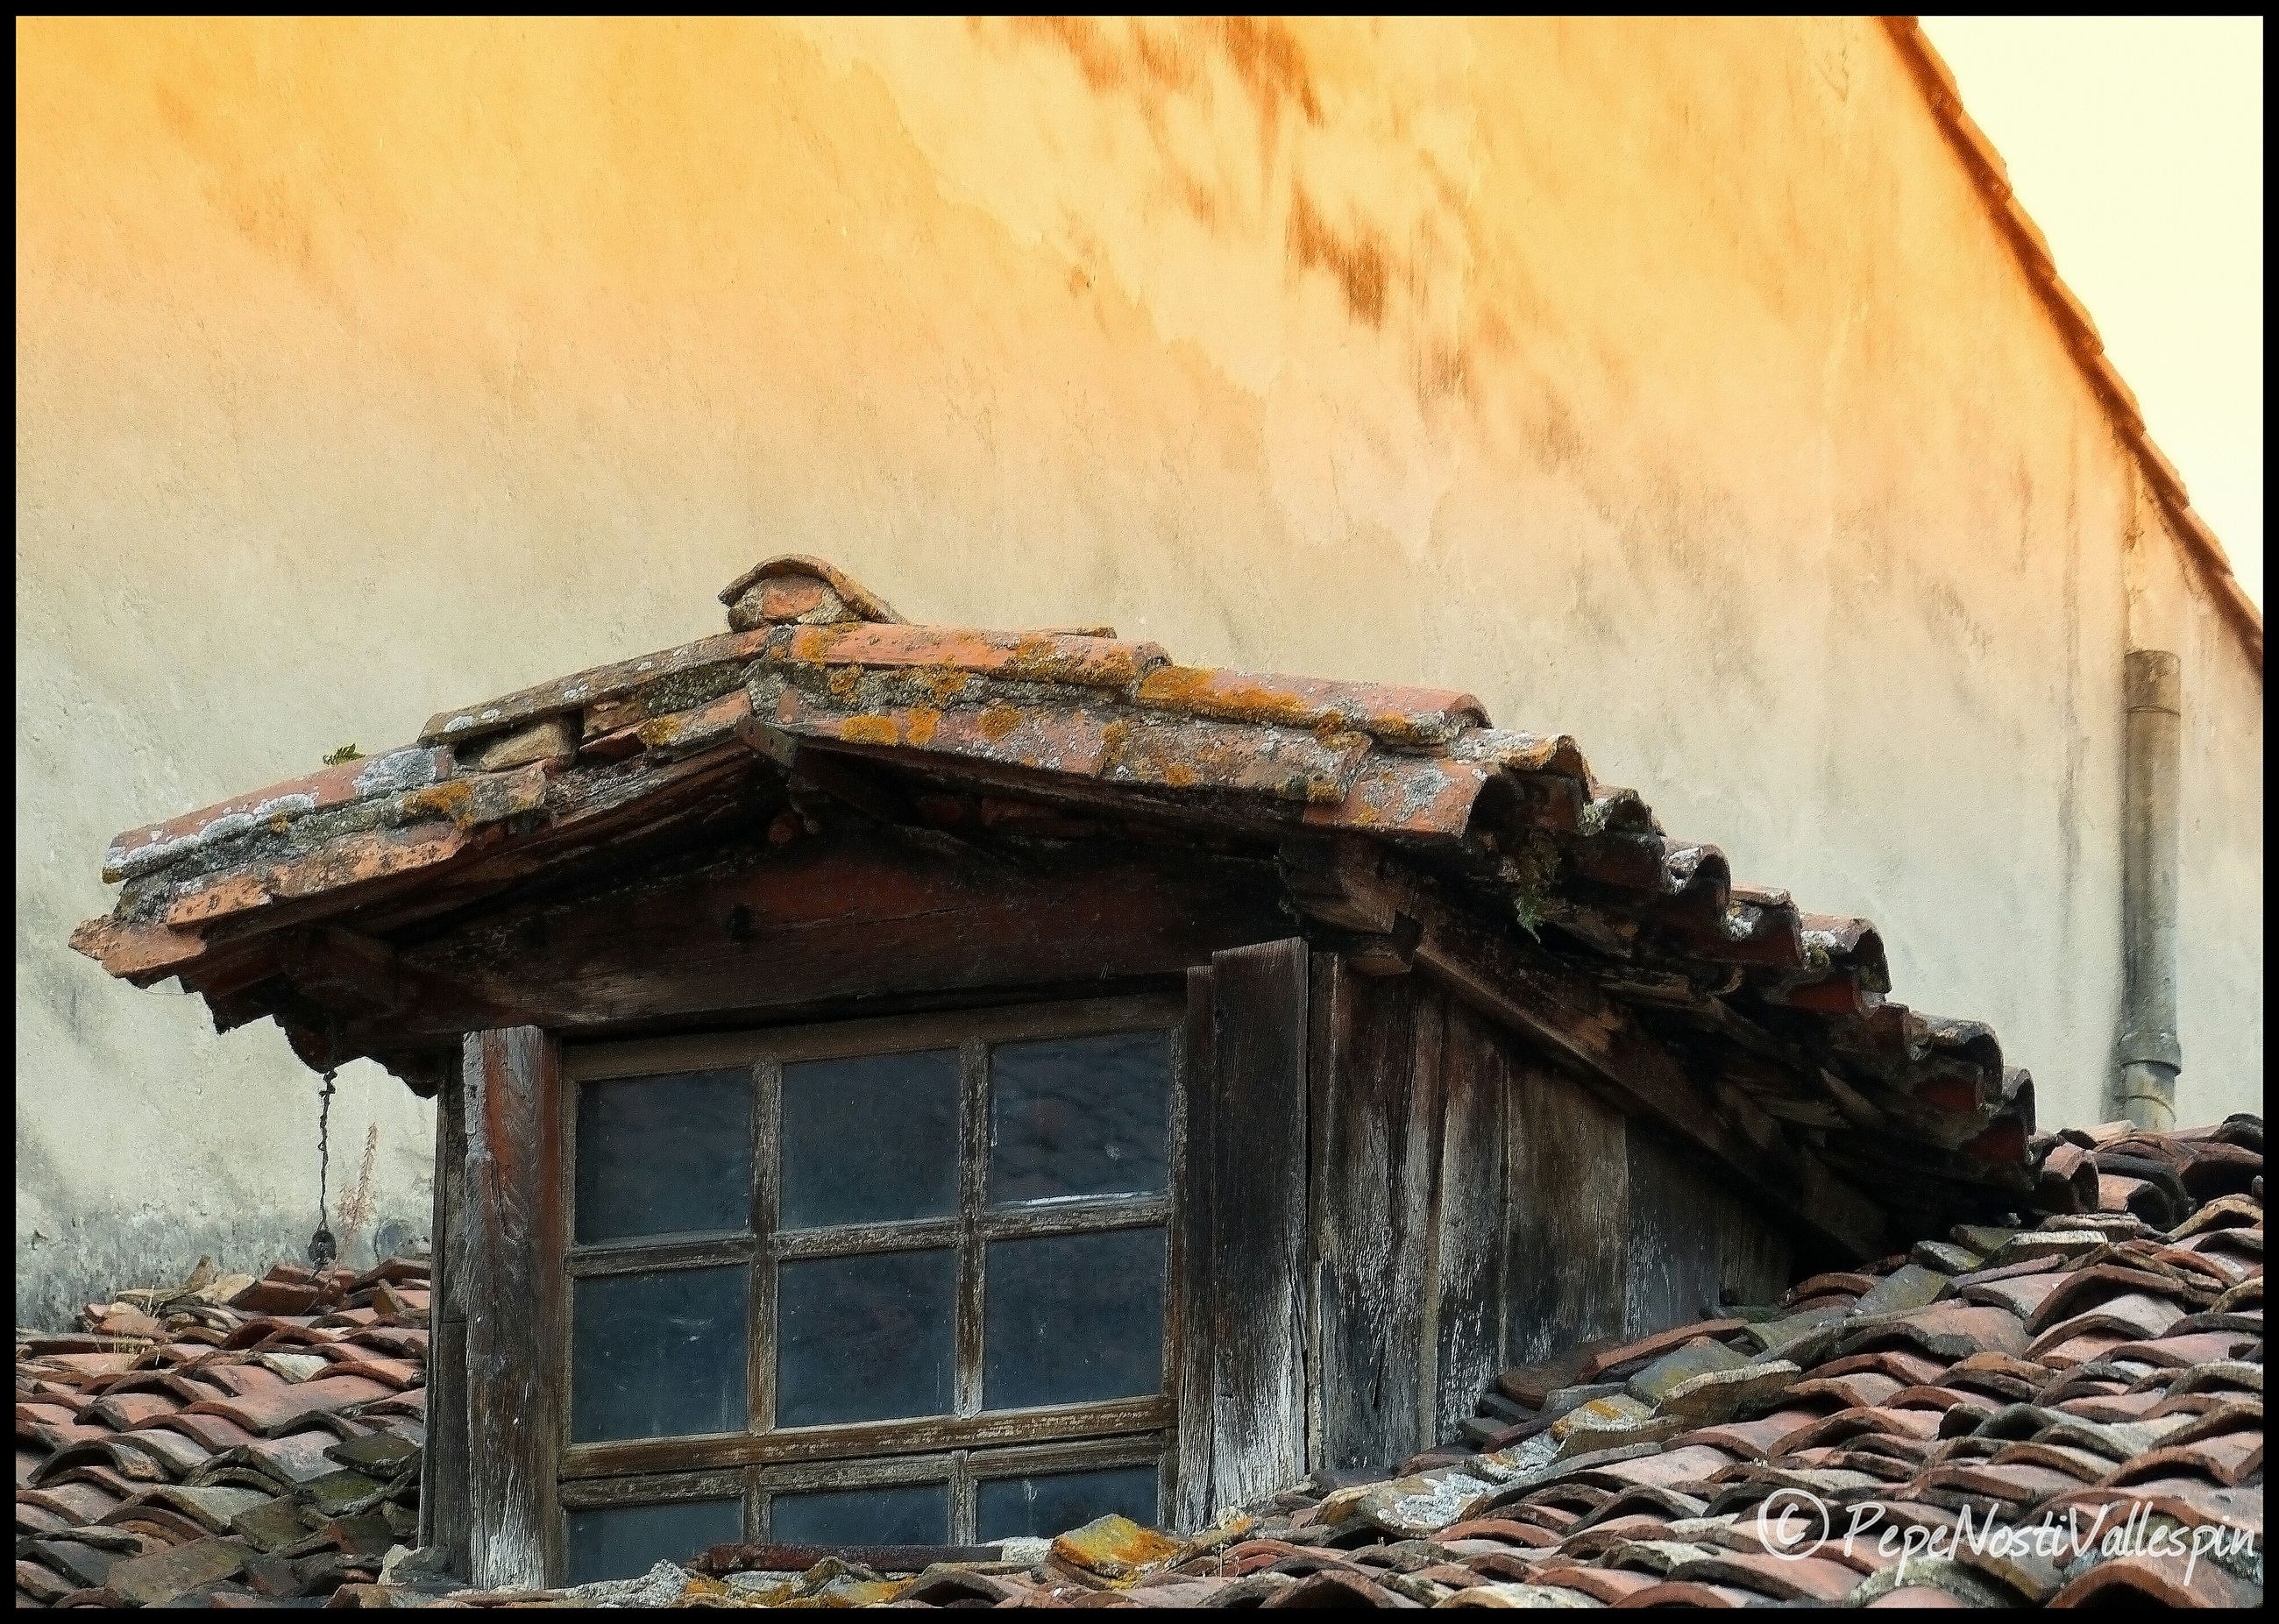 built structure, outdoors, day, sky, deterioration, no people, run-down, close-up, nature, vignette